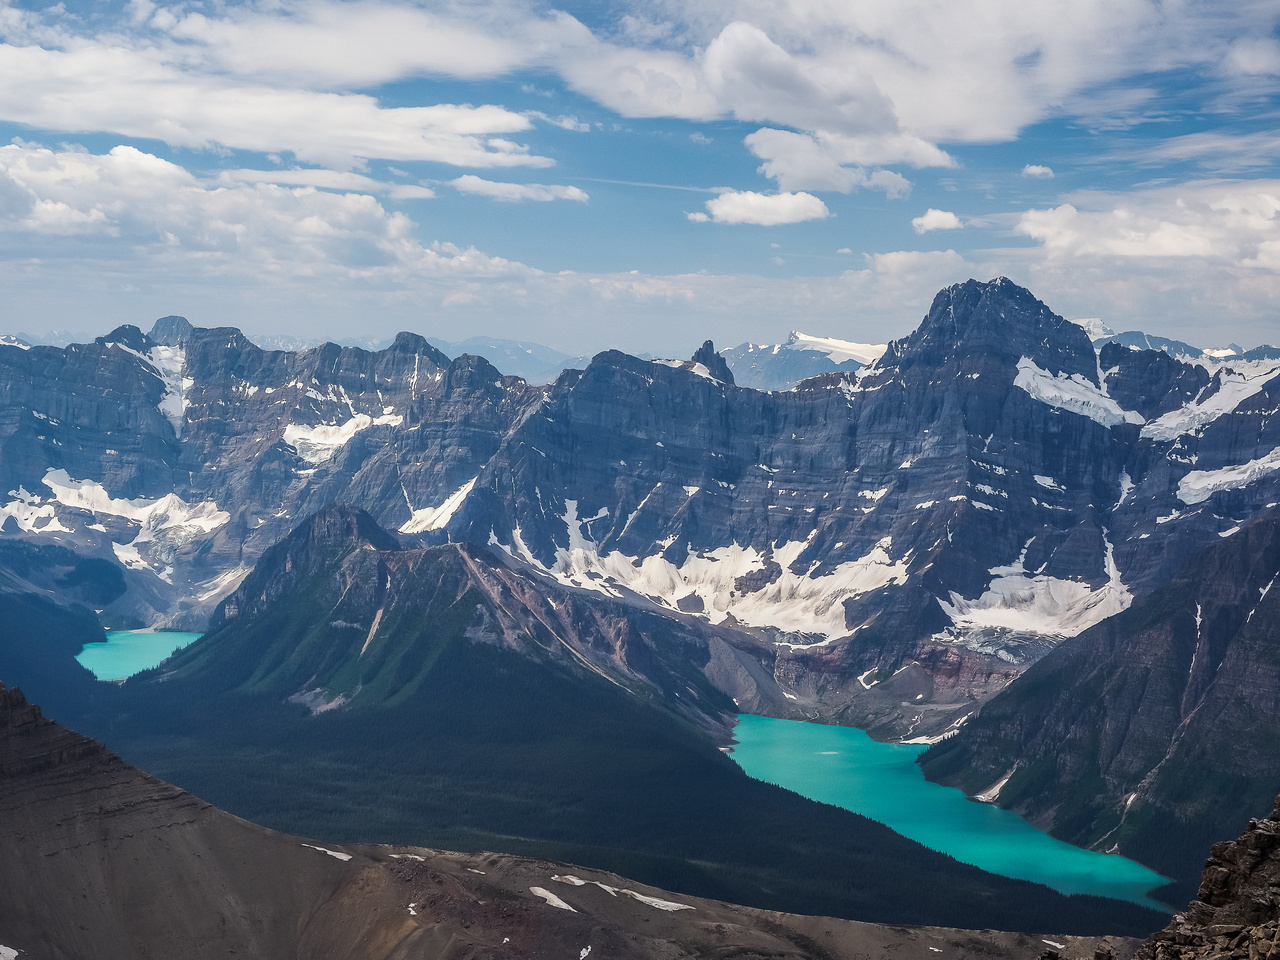 Breaker Mountain rises above Aries and Ebon Peaks and Cirque Lake at left. Aiguille's distinctive summit at center right and Howse Peak rises above the brilliantly colored waters of Chephren Lake at r